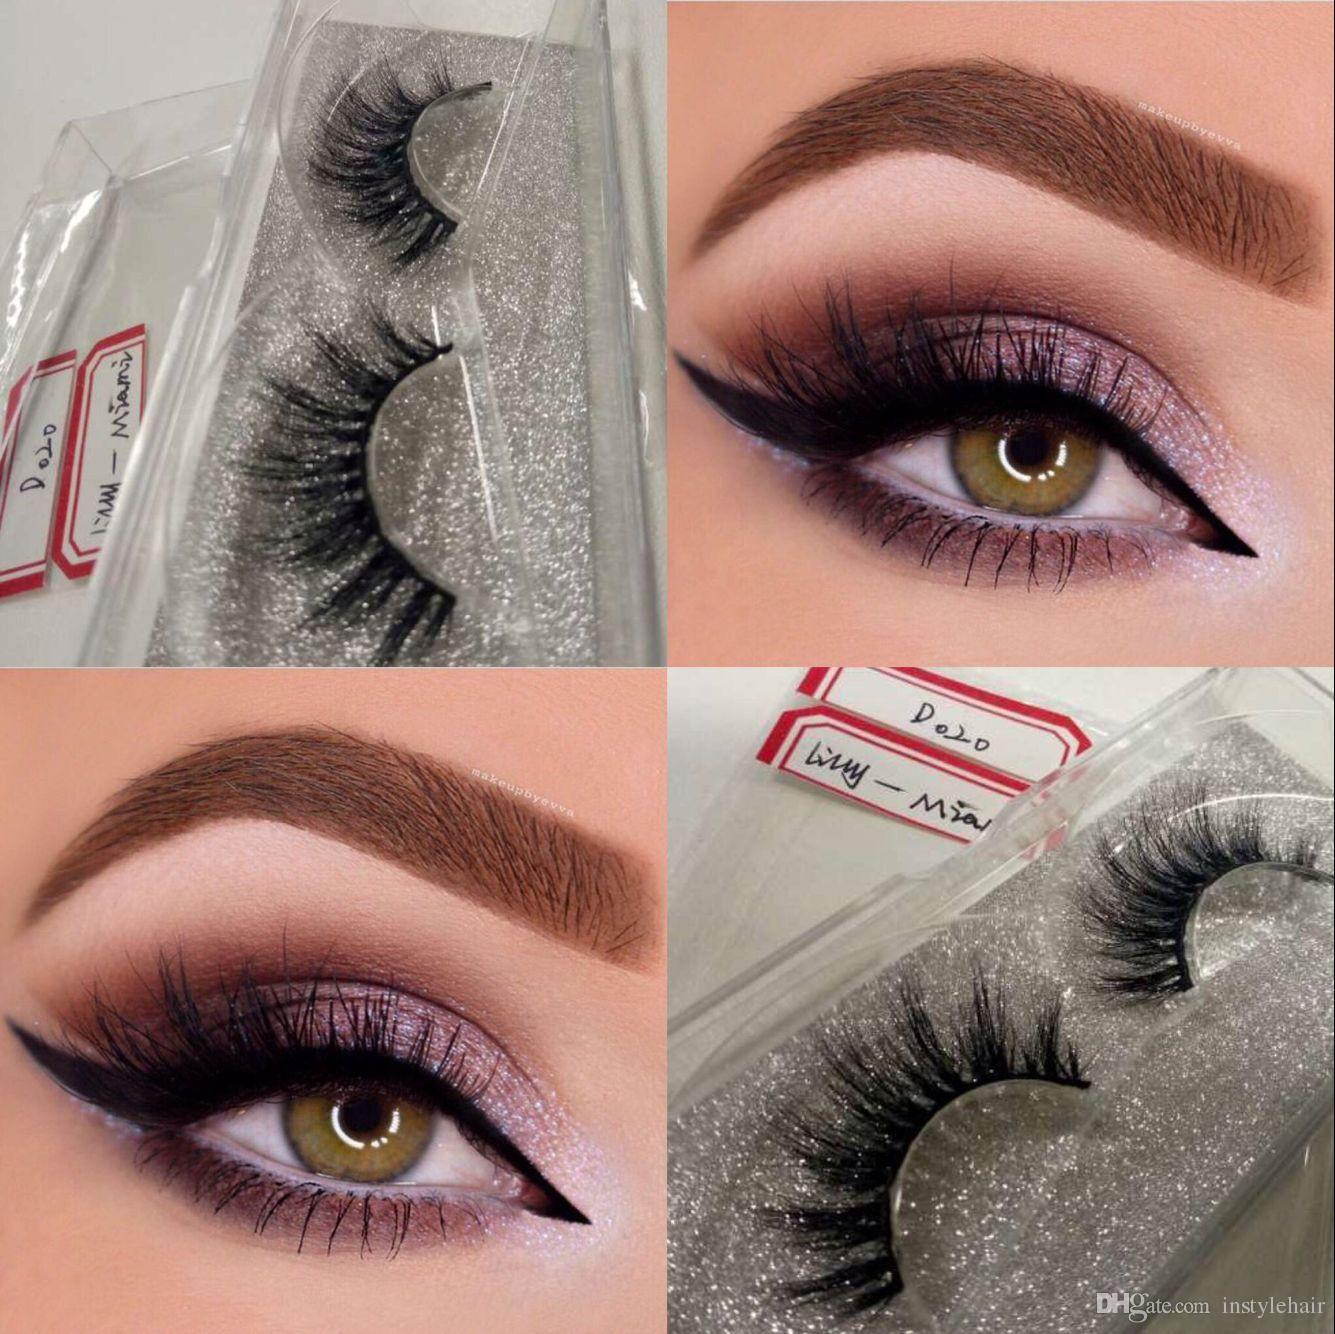 ef75fd866d3 Premium 100% Real Siberian Mink Strip Eyelashes 3D Mink Lashes Miami Lashes  Semi Permanent Eyelash Extensions Applying False Eyelashes From Instylehair,  ...